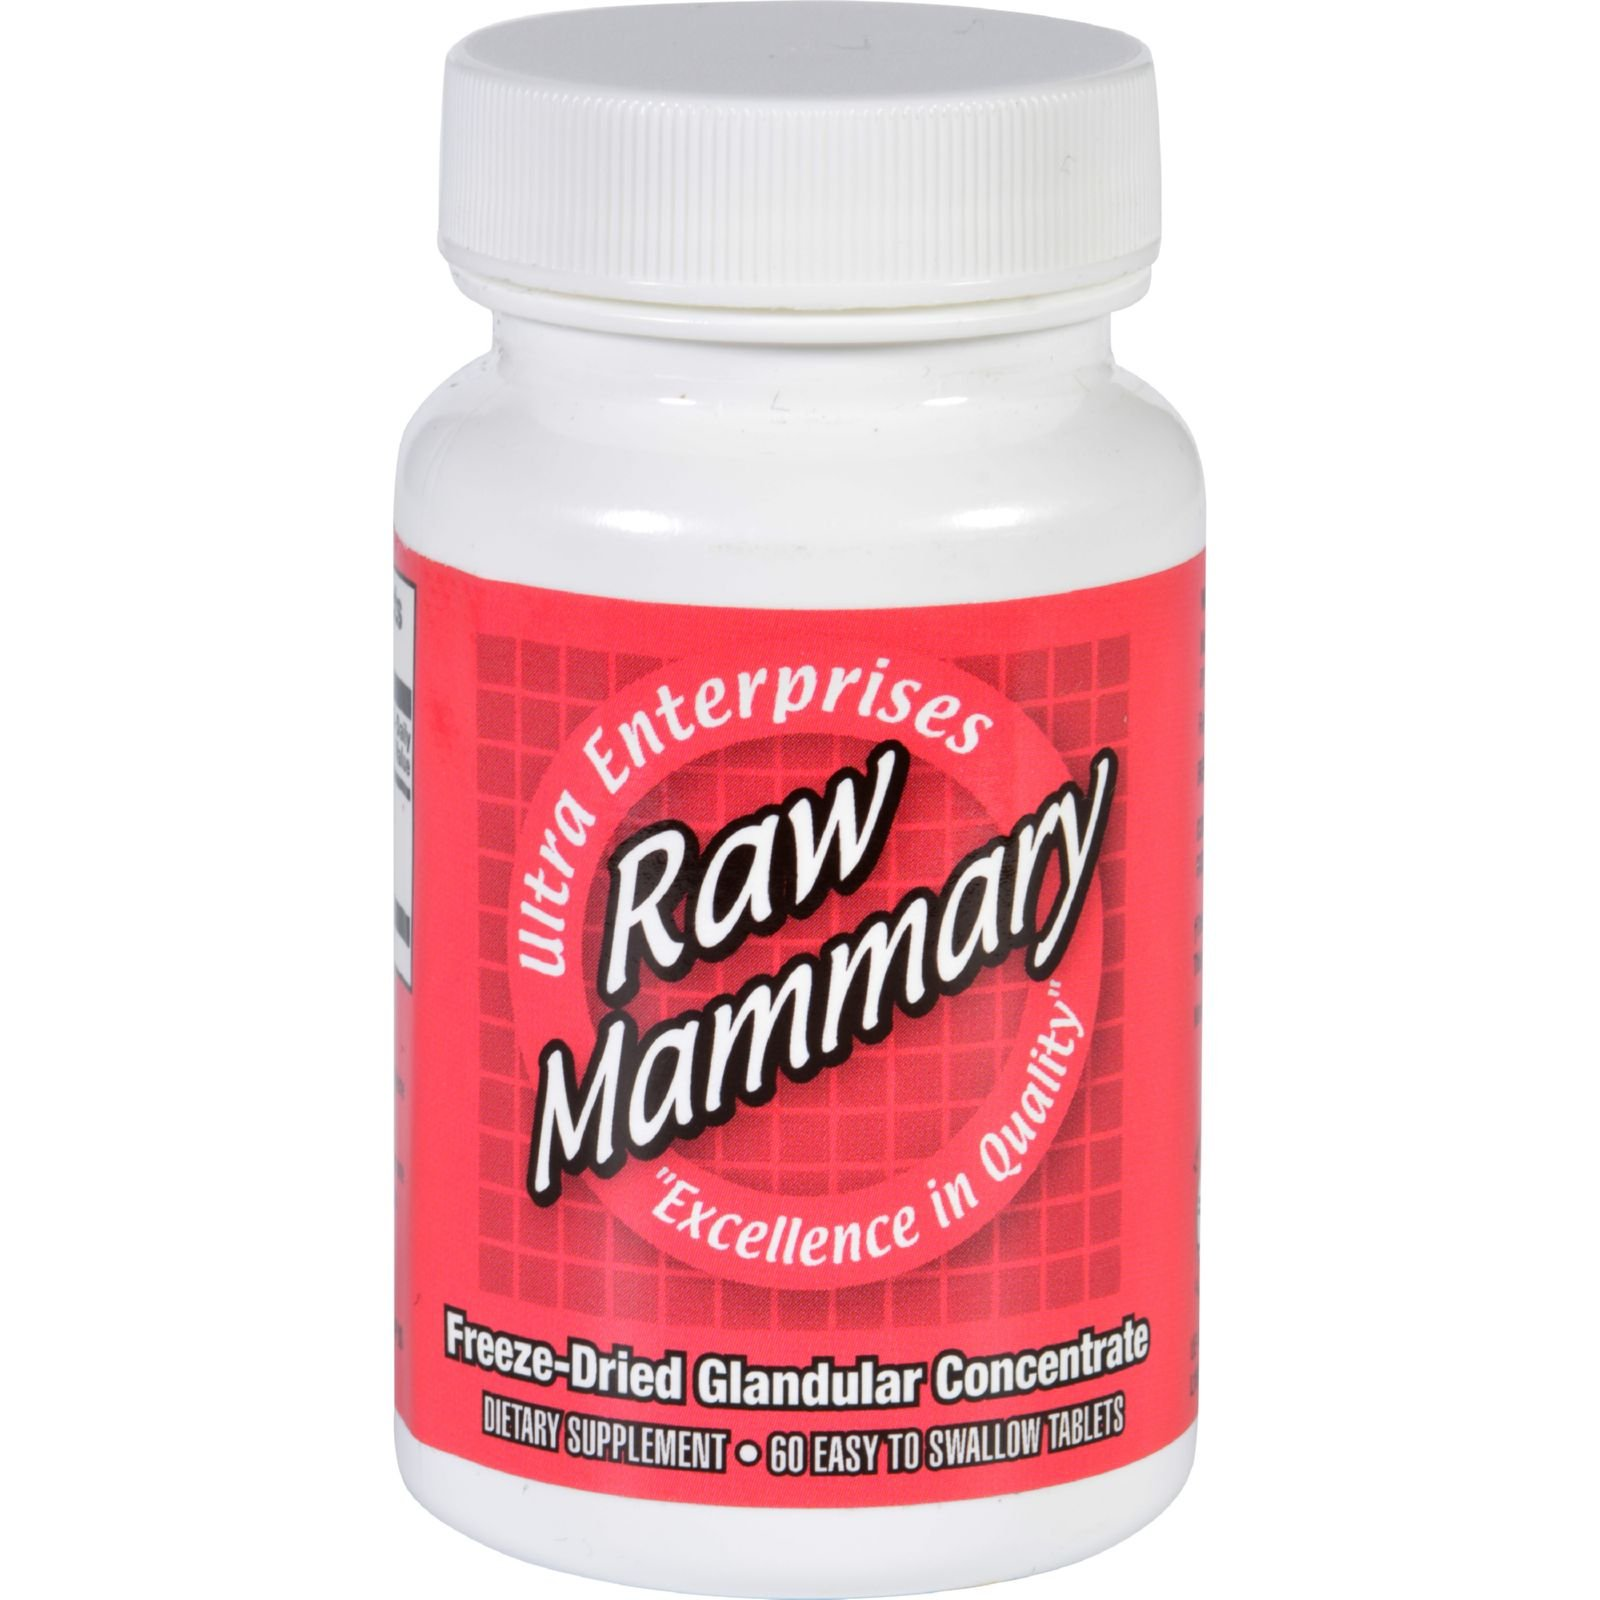 Ultra Glandulars Mammary - Raw - Easy To Swallow - Gluten Free - 60 Tablets (Pack of 4)